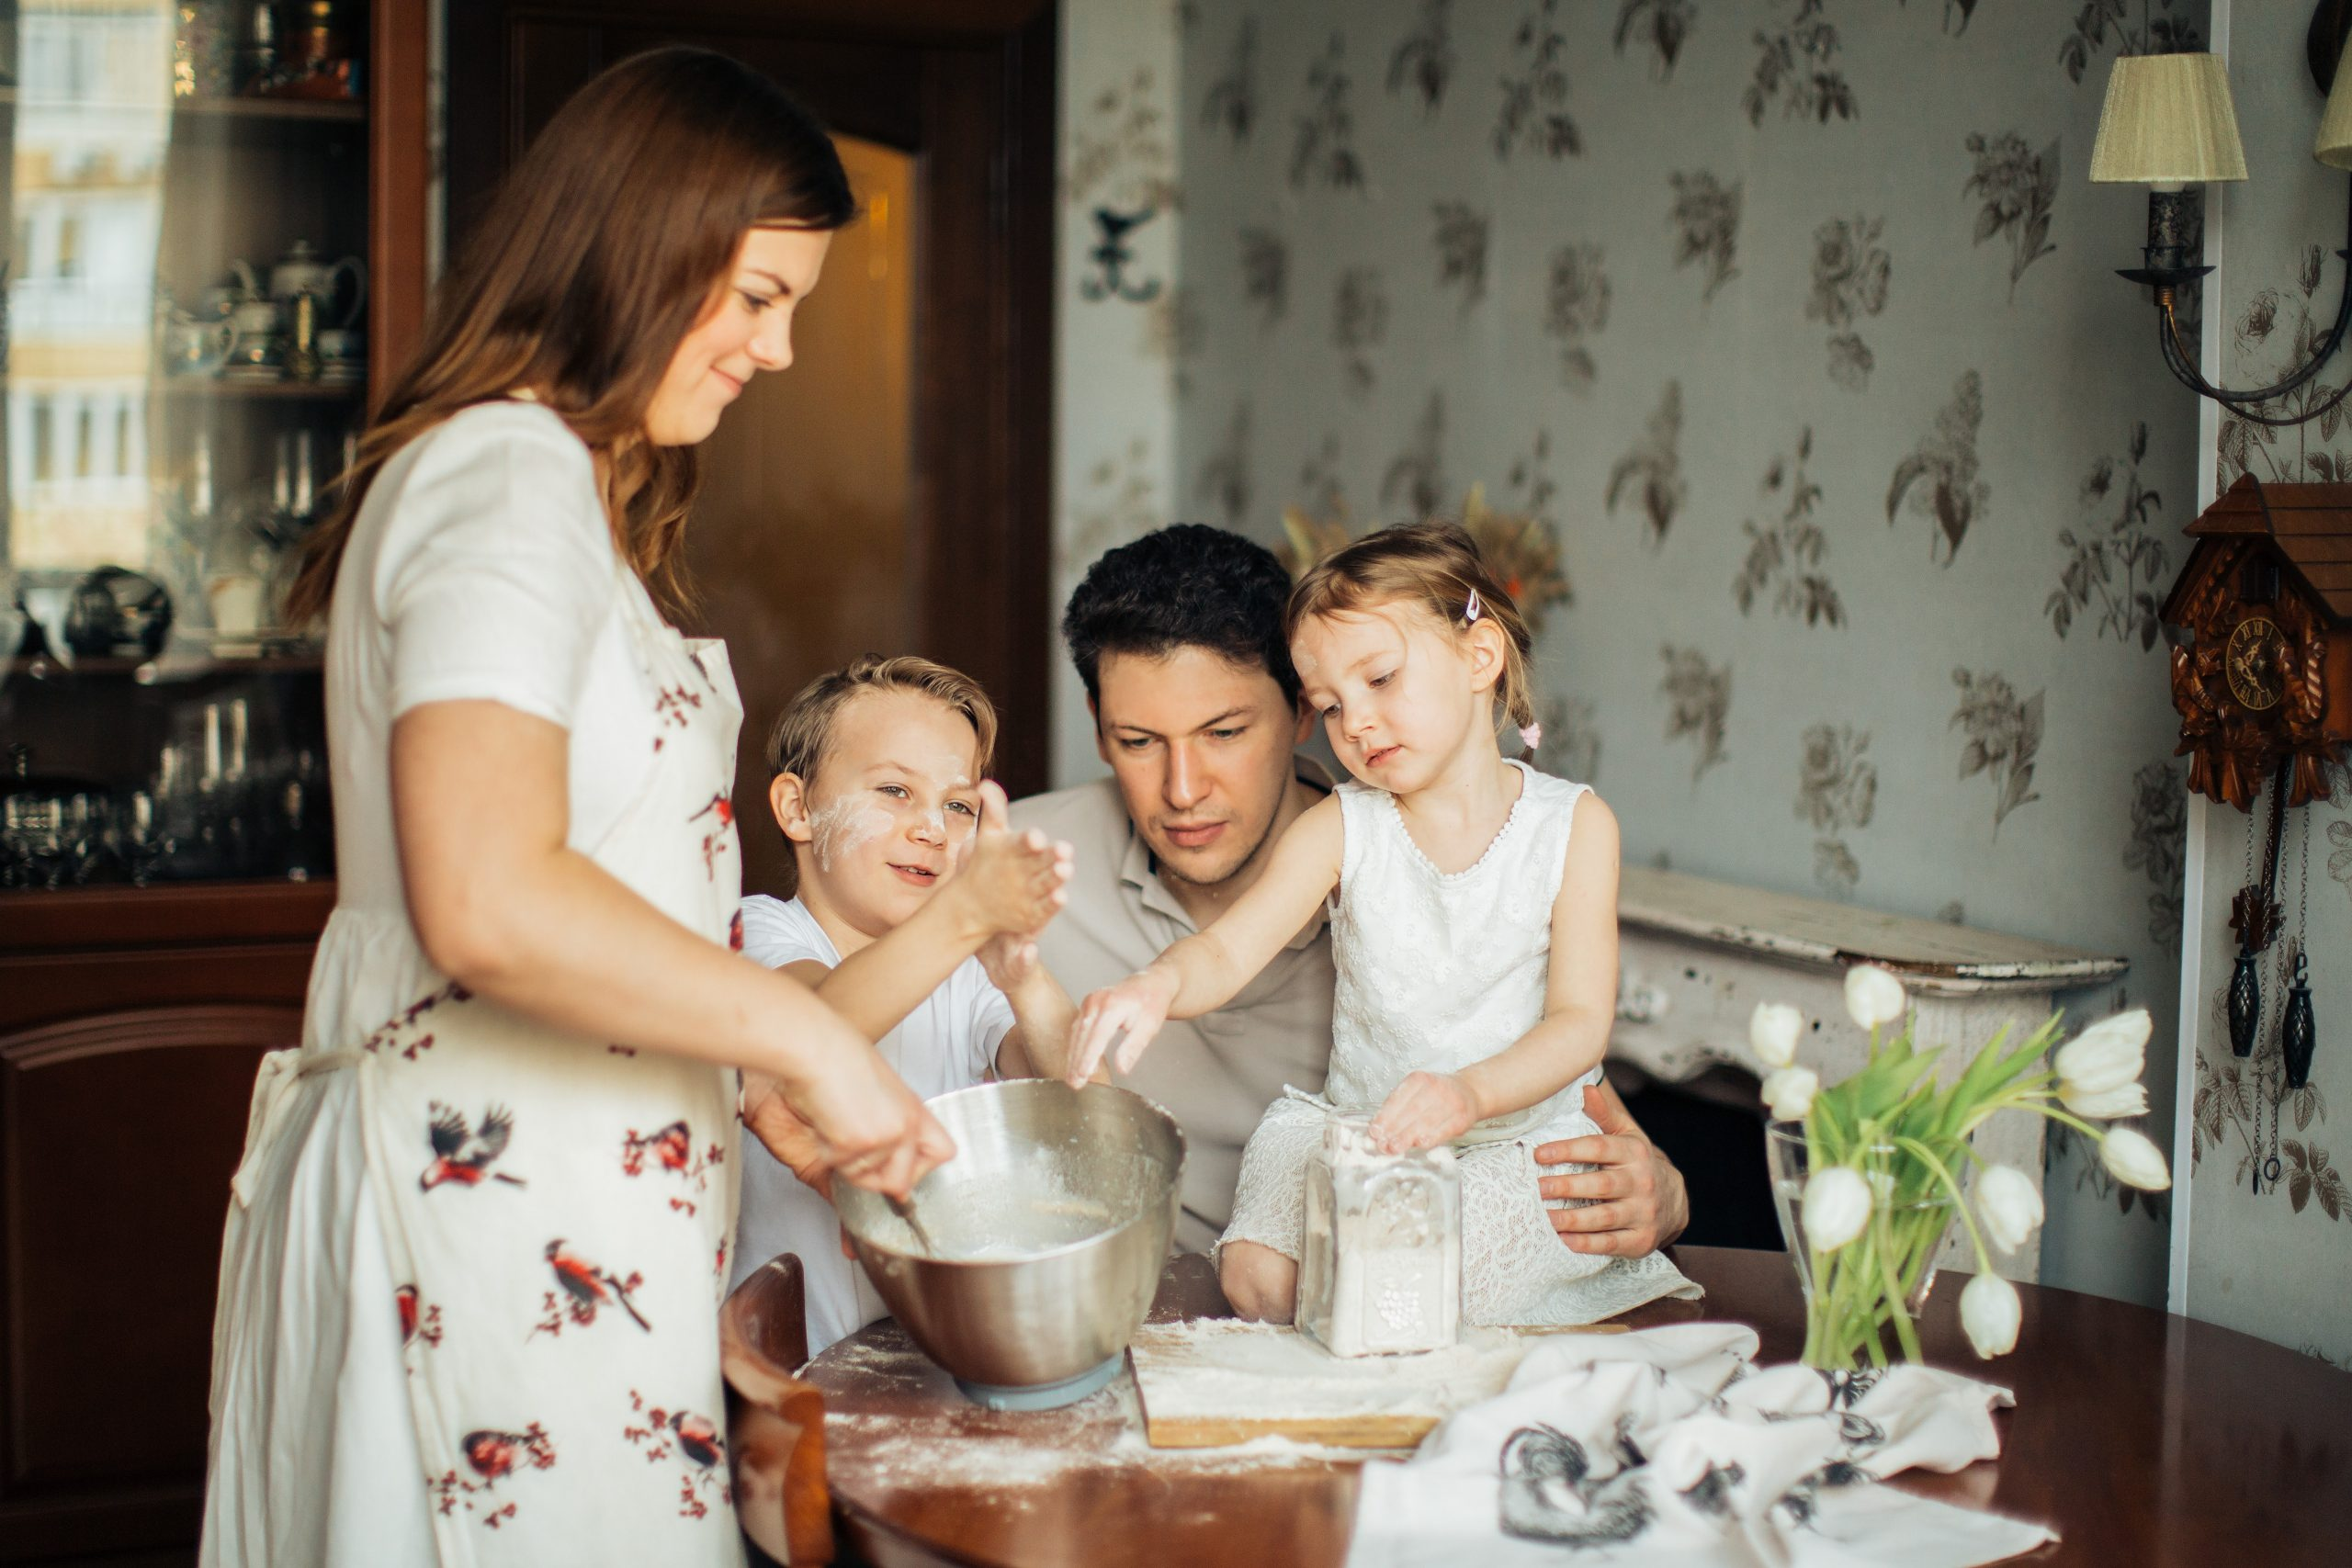 photo-of-kids-playing-with-flour-3807188